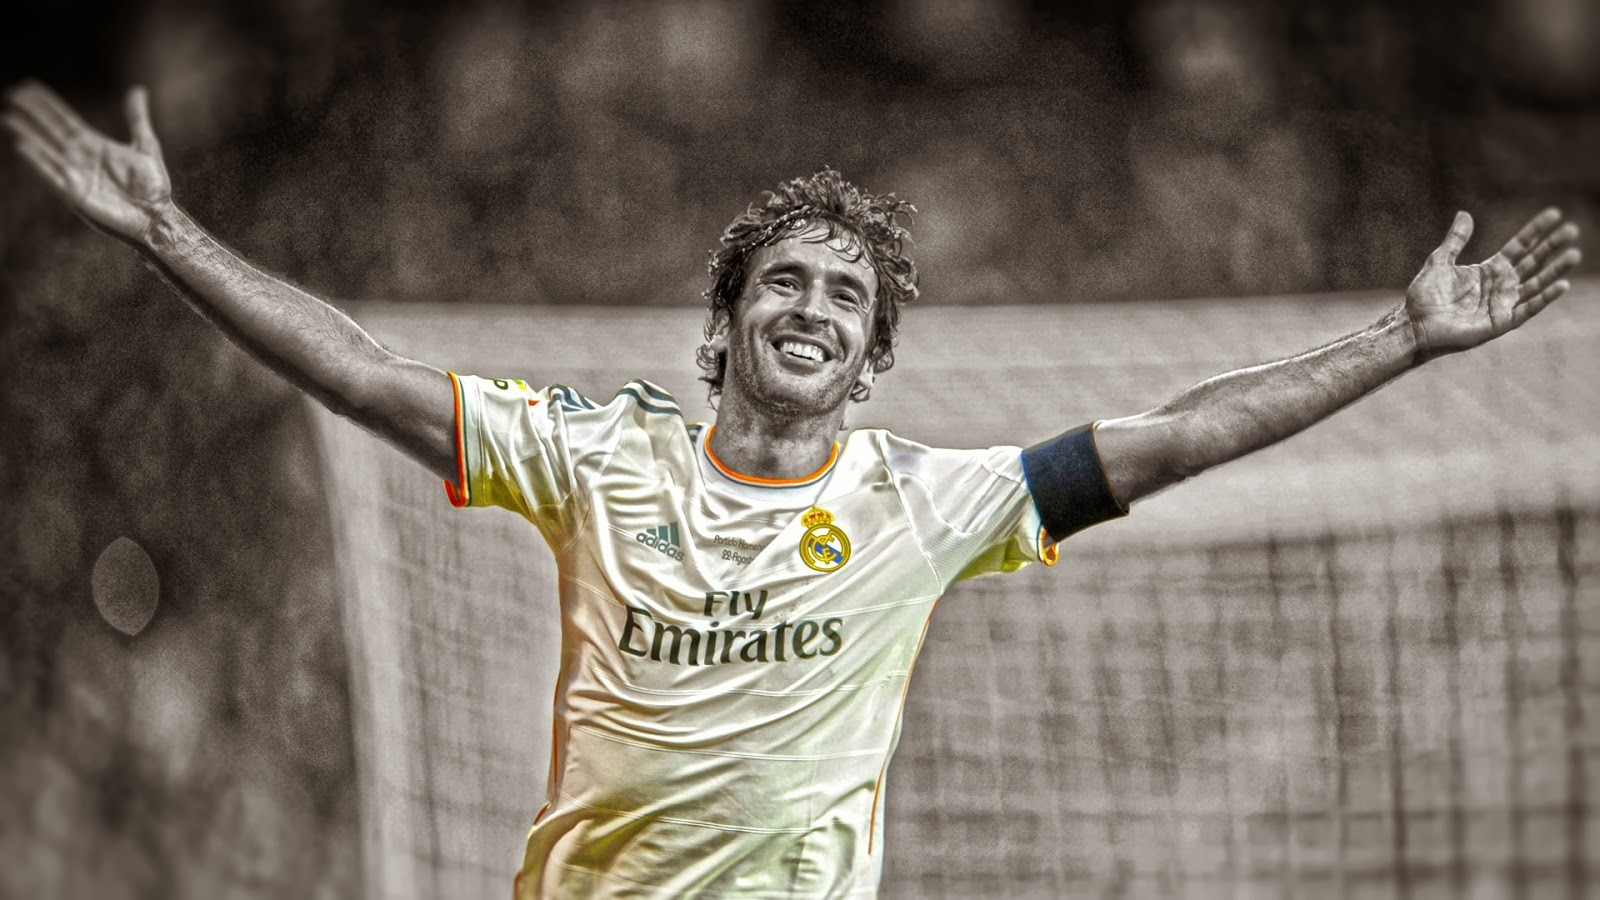 Raul gonzalez wallpaper 2013